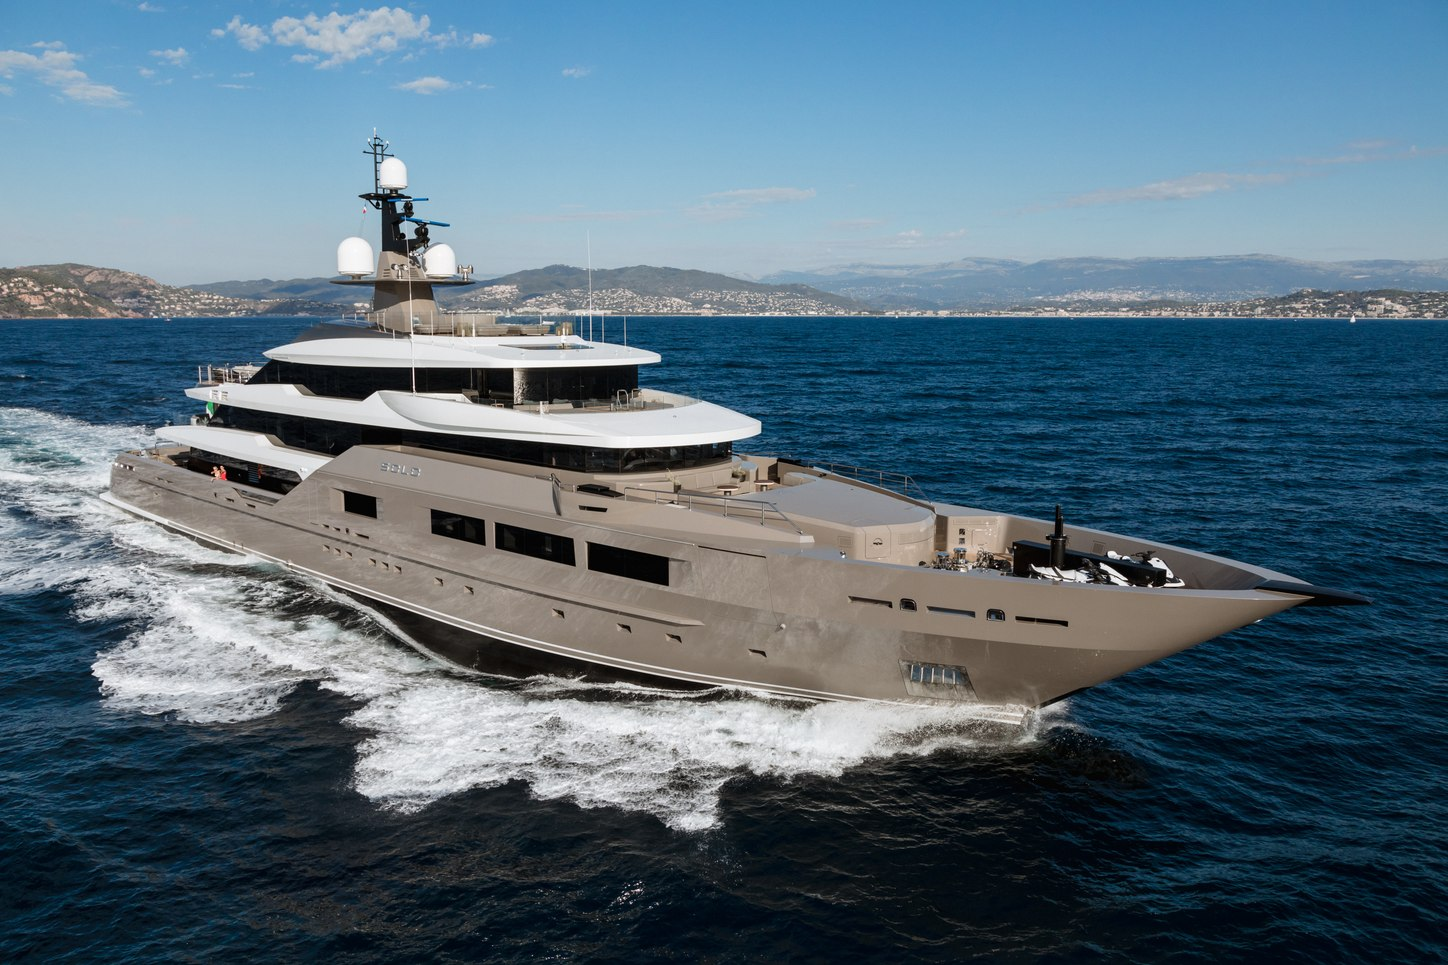 superyacht SOLO cruising on a Mediterranean yacht charter